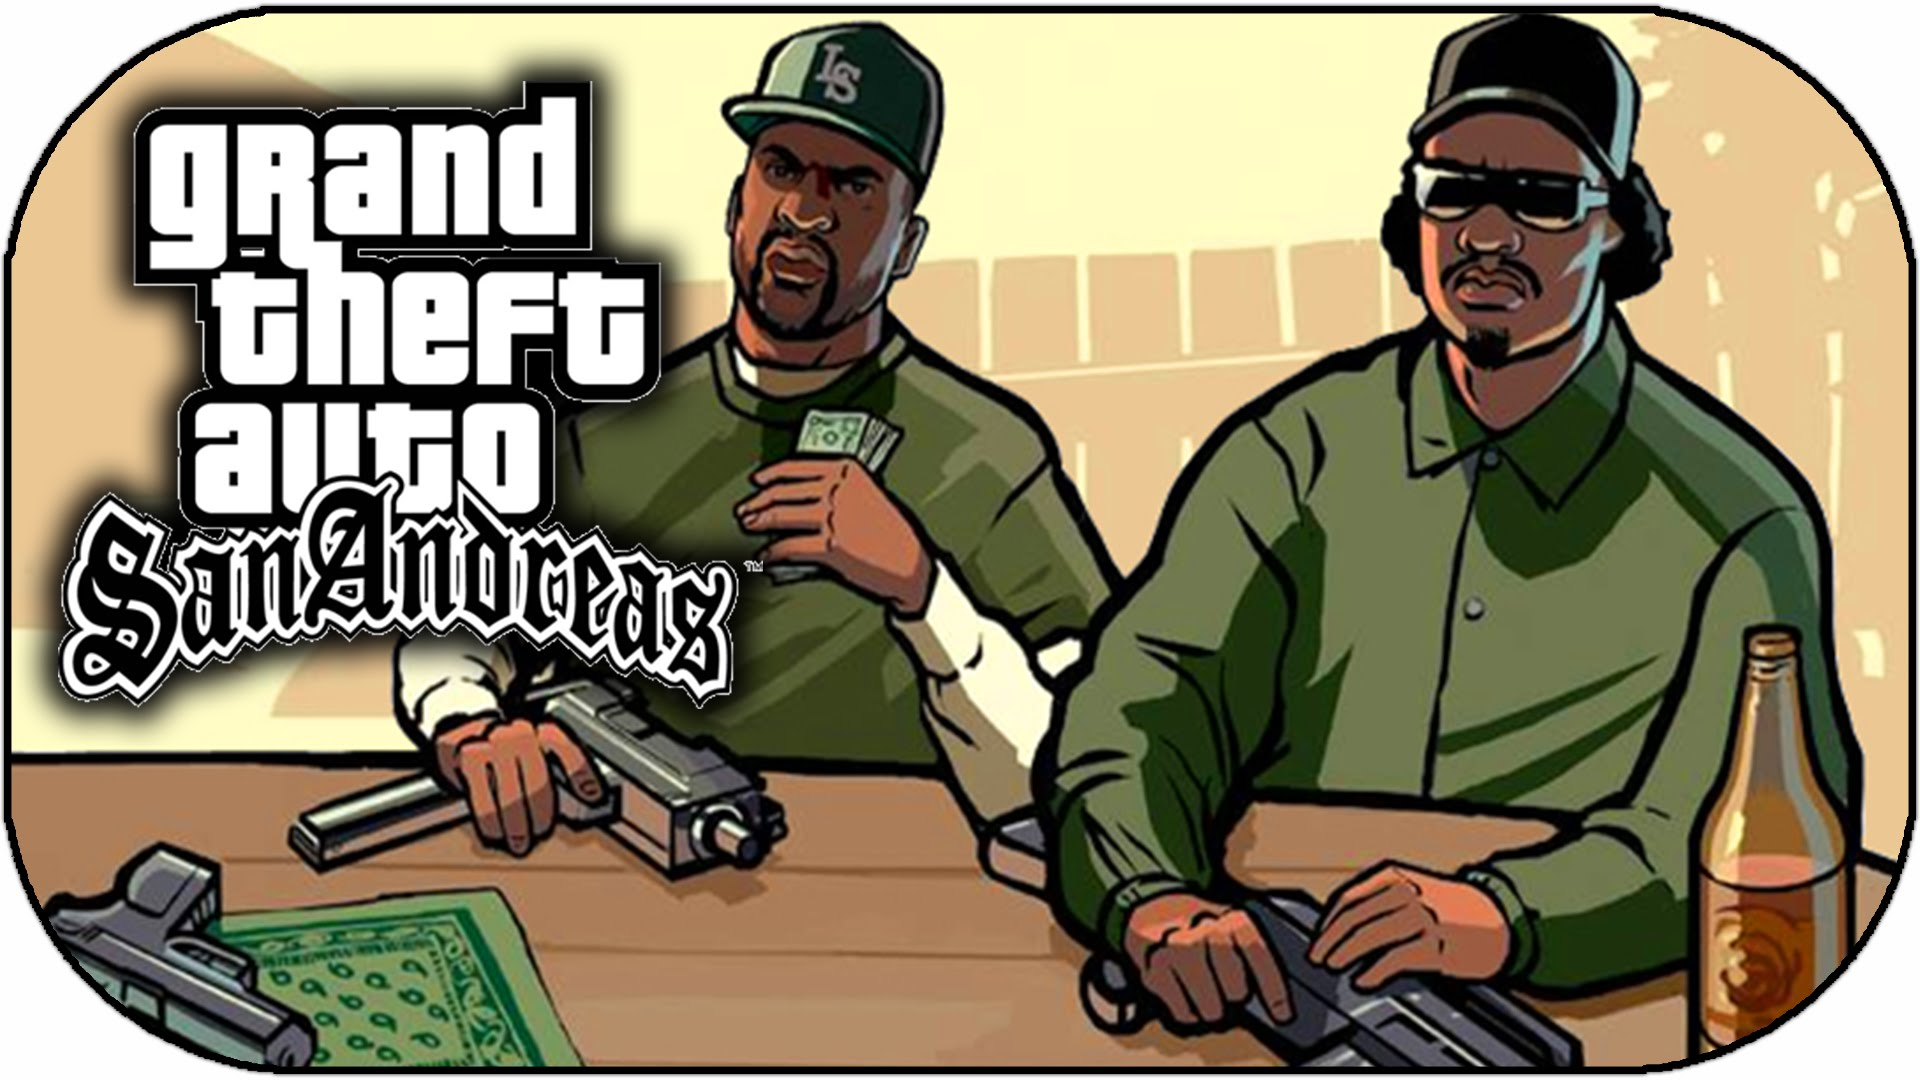 Grand Theft Auto: San Andreas lite v10 - Android king